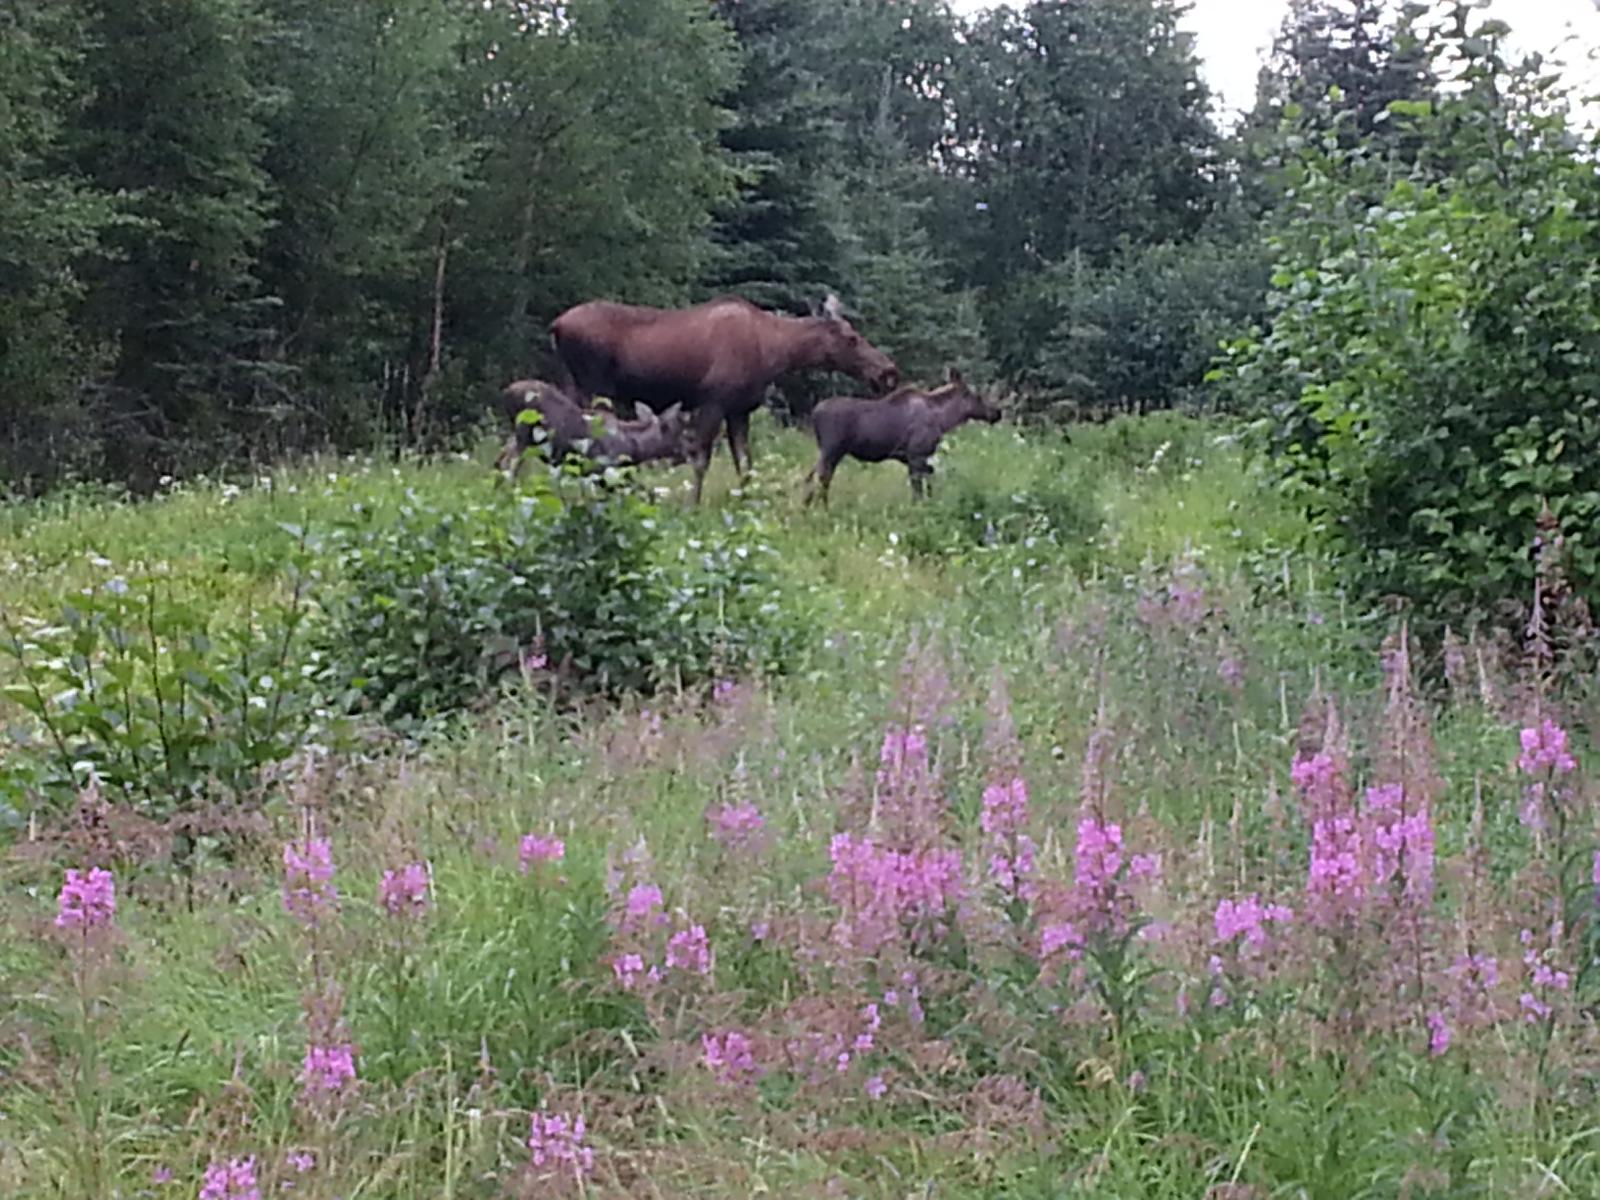 Mama Moose & Calves in a field of Fireweed, August 2010